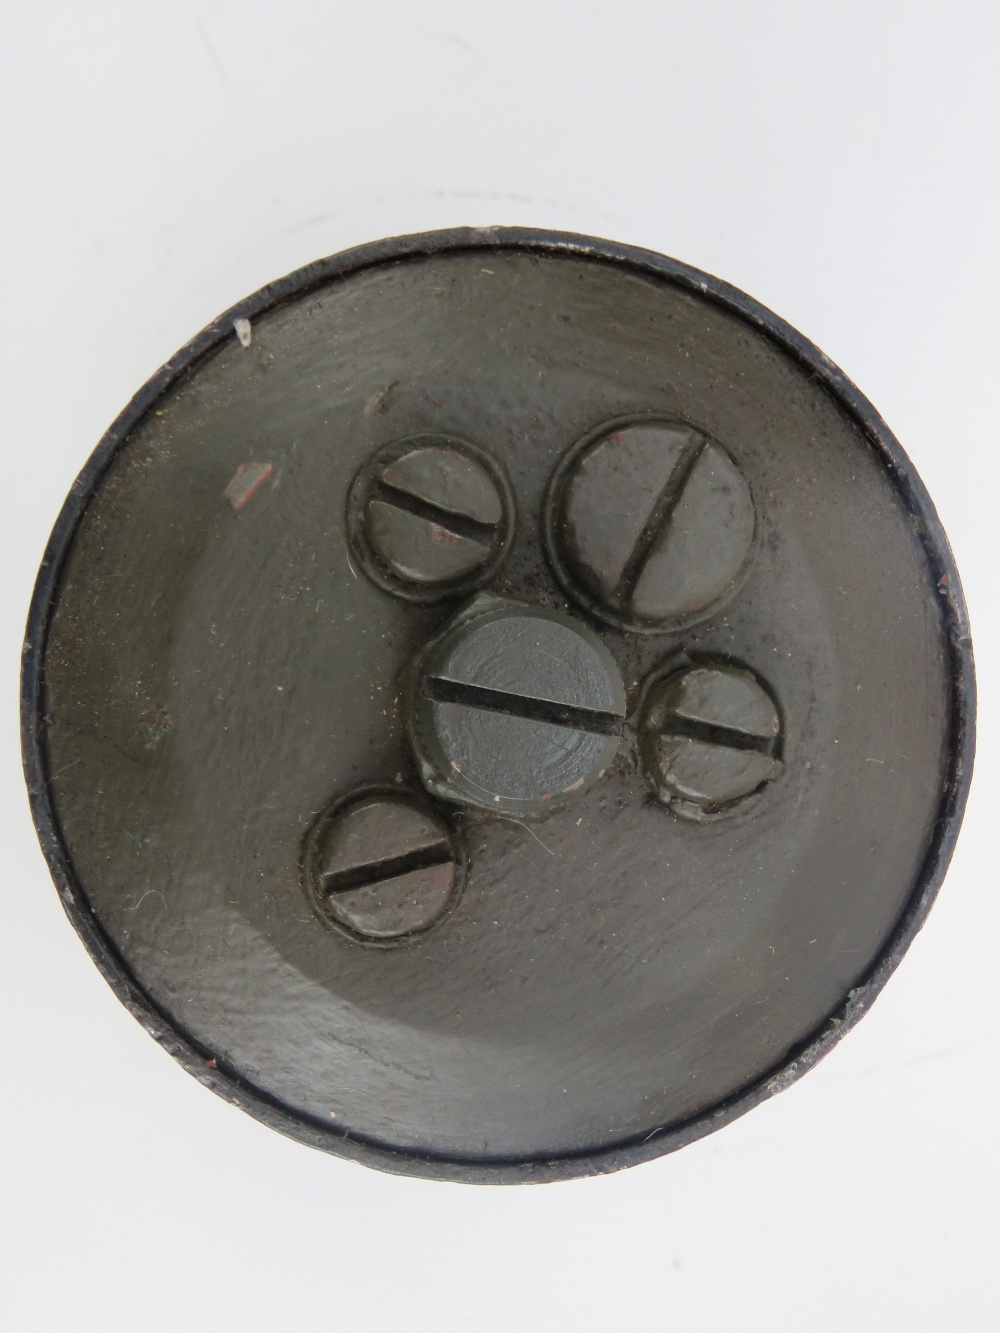 Lot 86 - A WWII German S Mine with transit plugs,